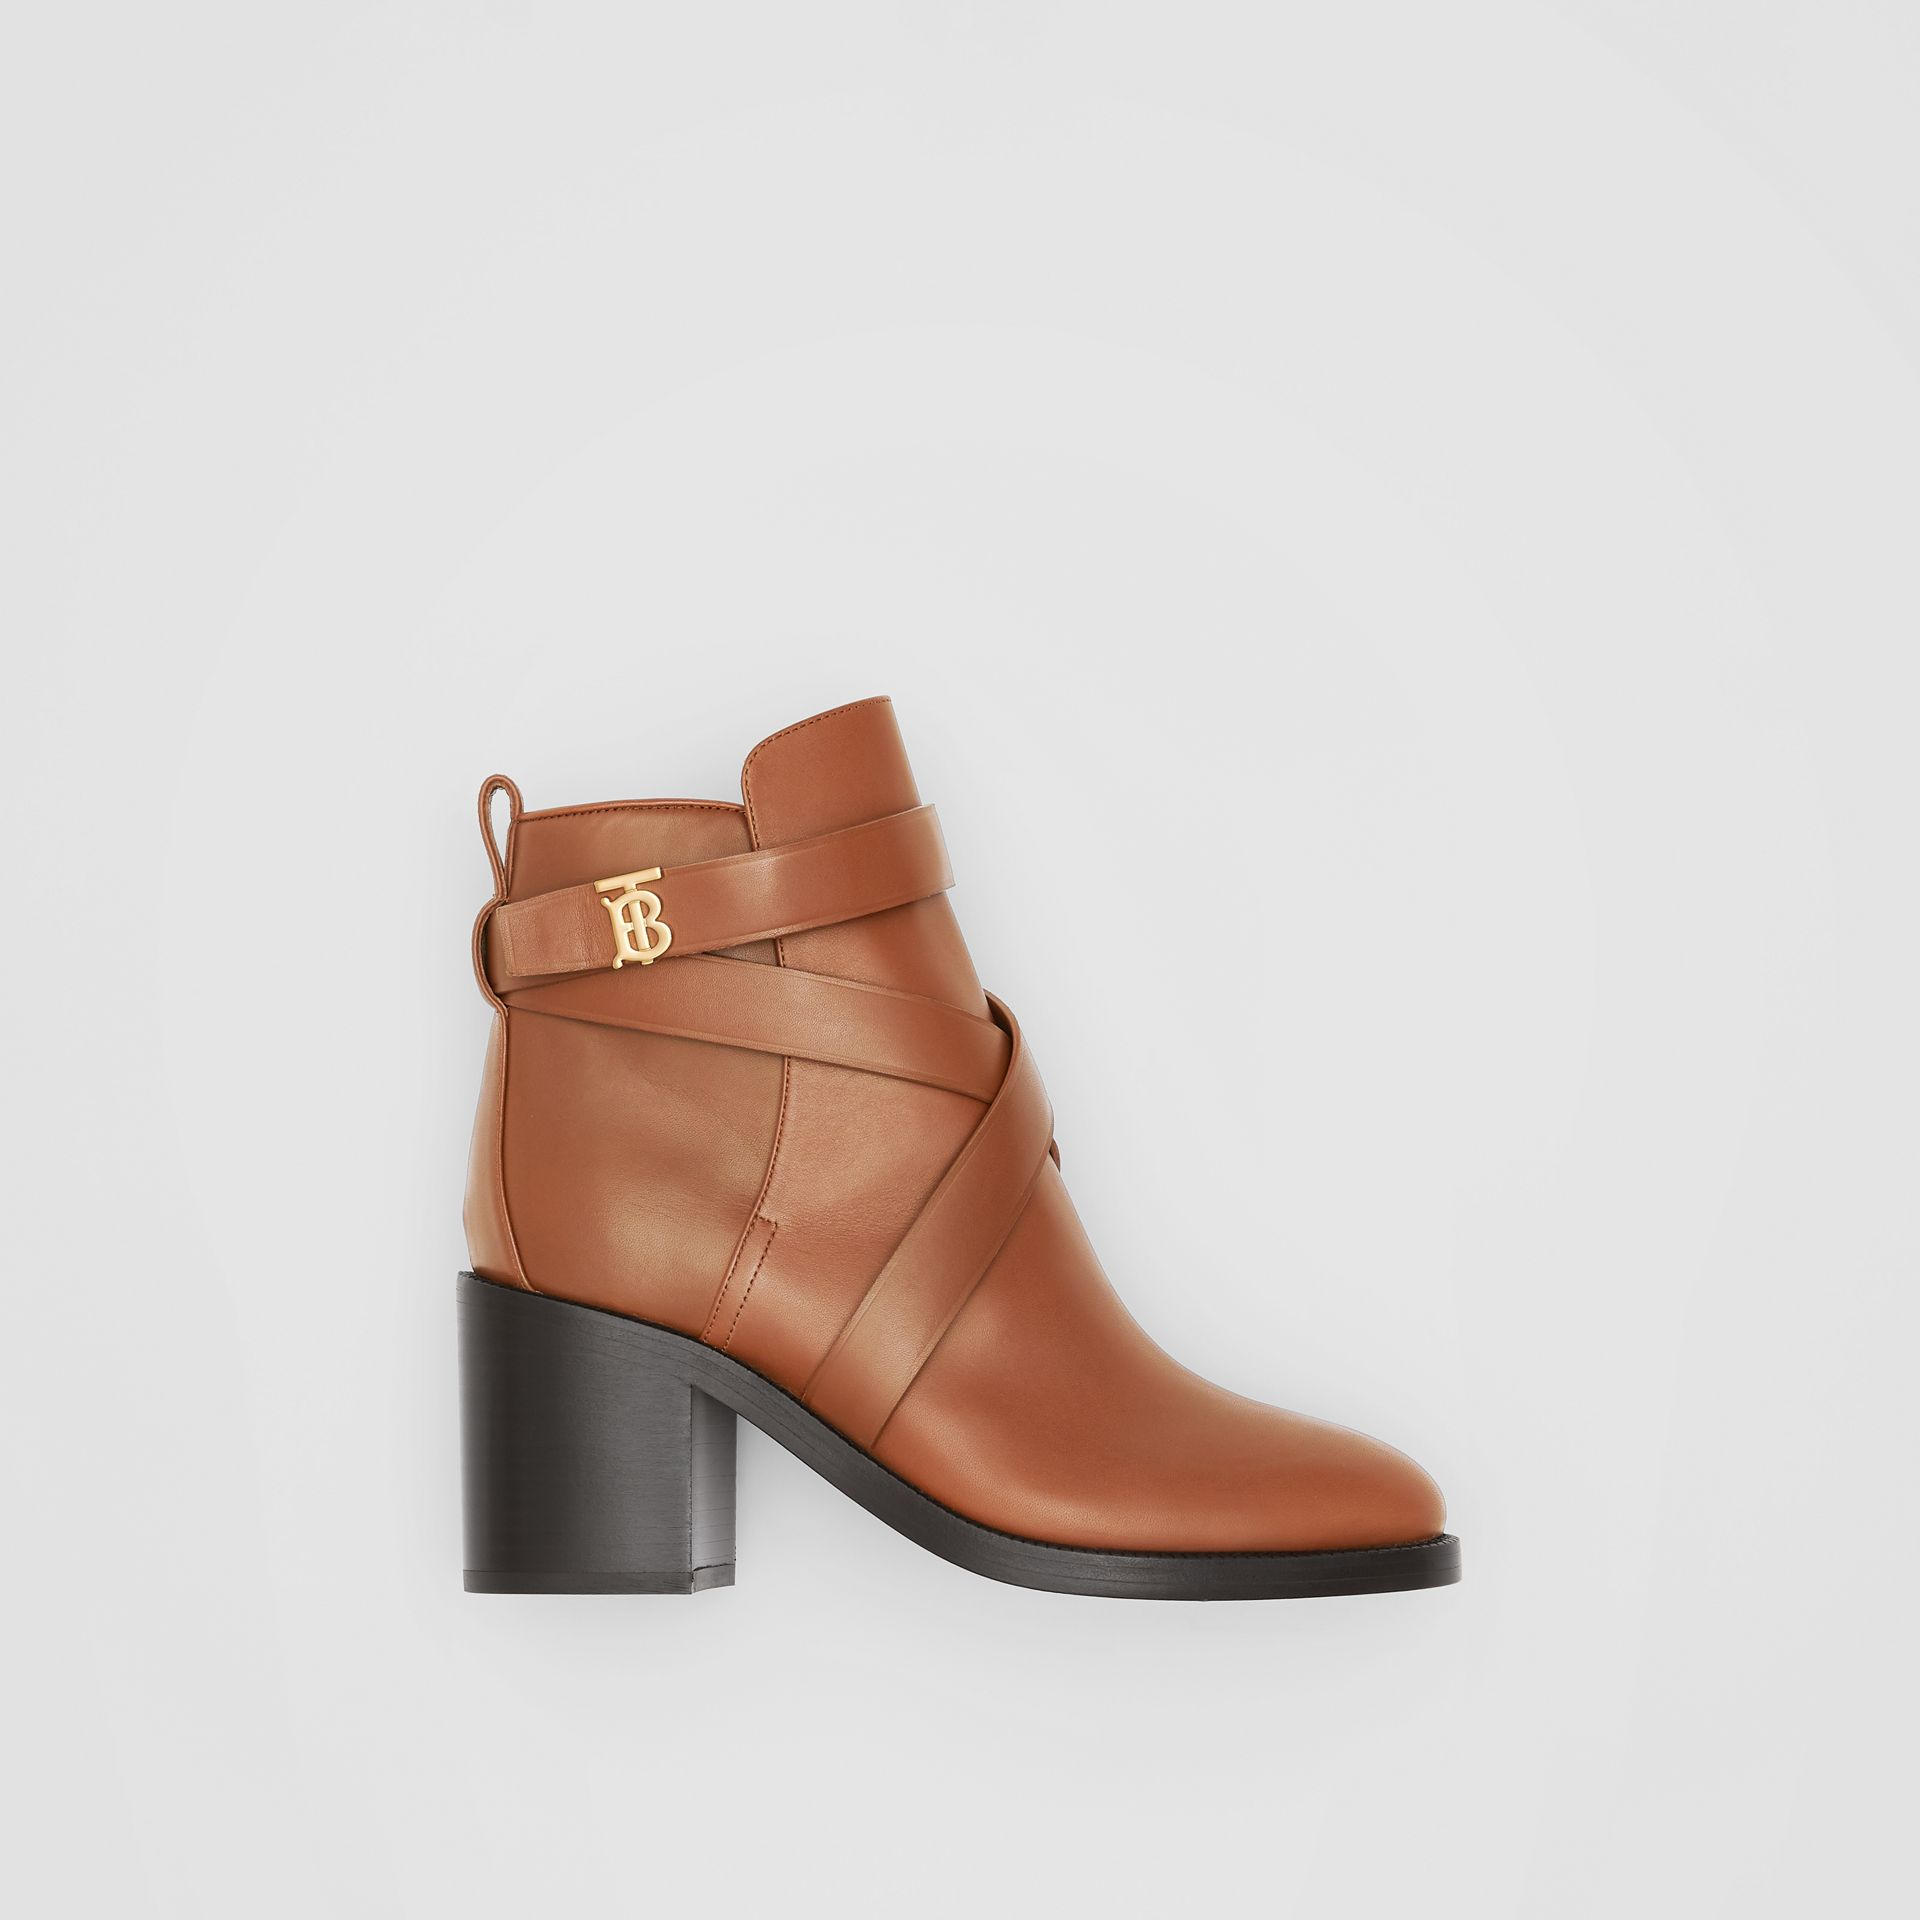 Bottines en cuir Monogram (Hâle) - Femme | Burberry - photo de la galerie 0